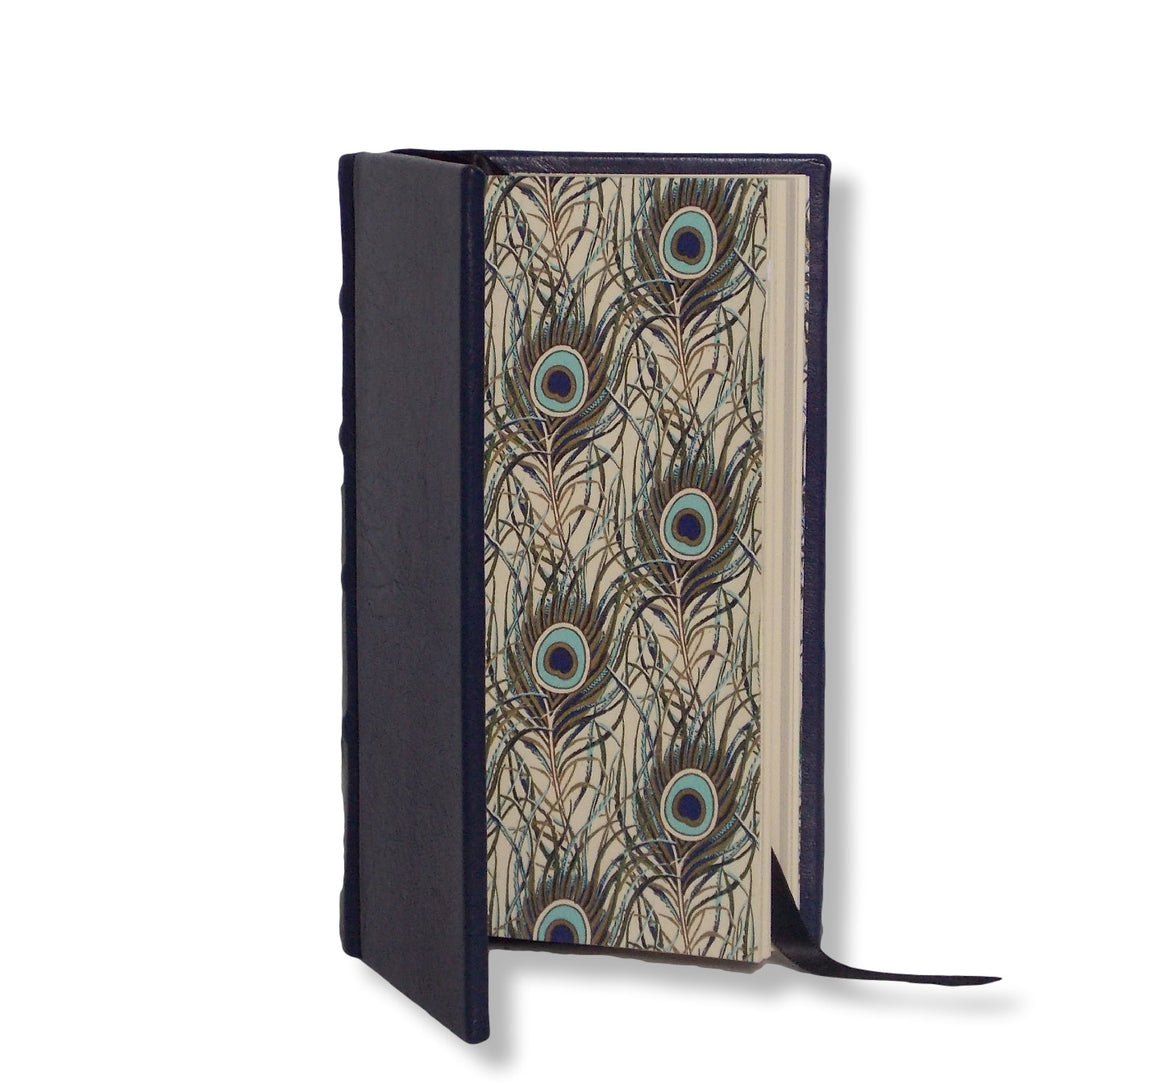 Navy leather slimline journal with peacock design end papers